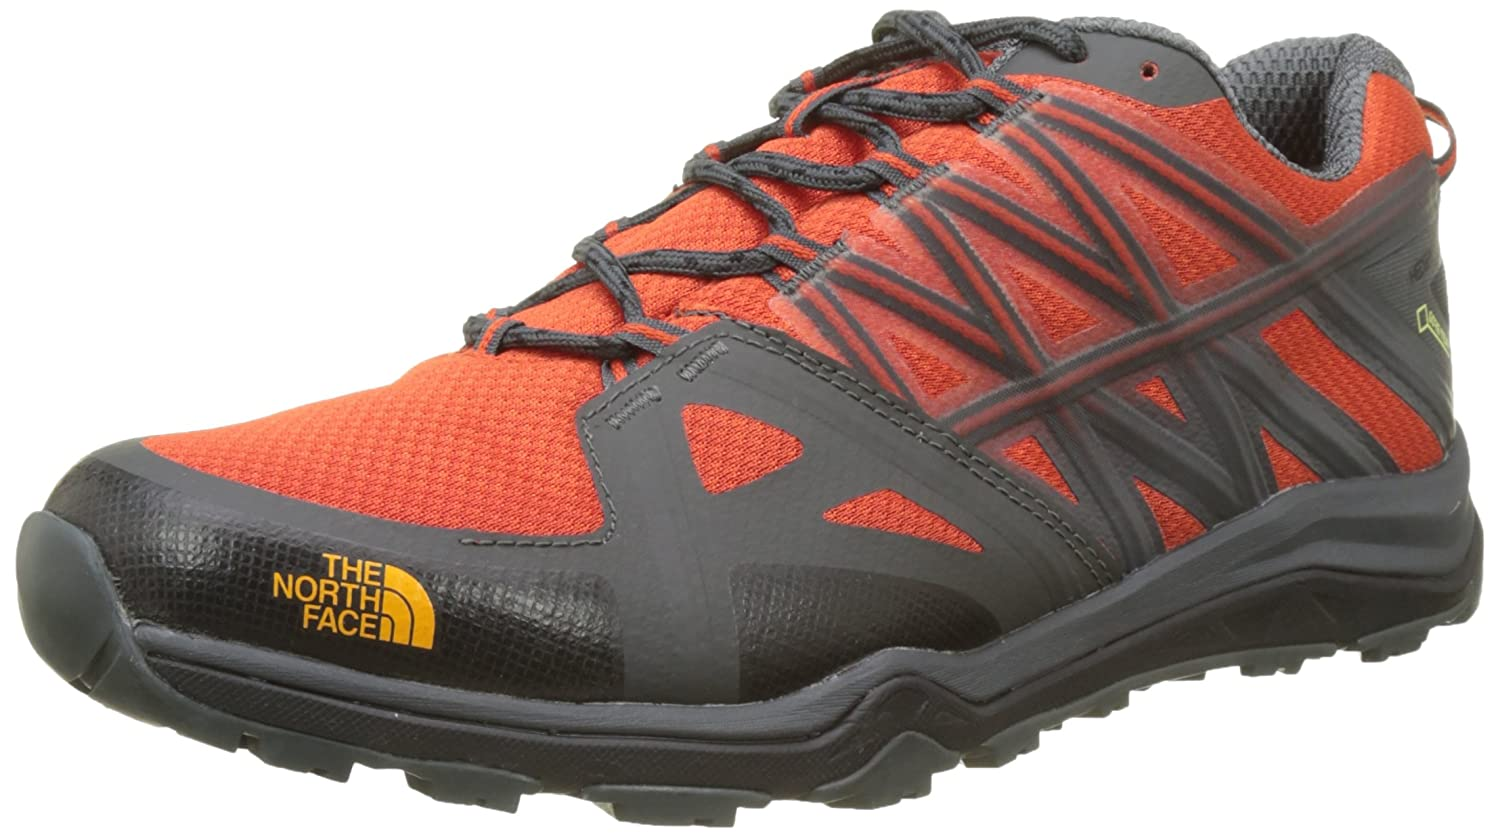 The North Face M HH Fp LTE II GTX, Zapatillas de Senderismo Para Hombre 45.5 EU|Varios Colores (Tnf Black/Tibetan Orange)